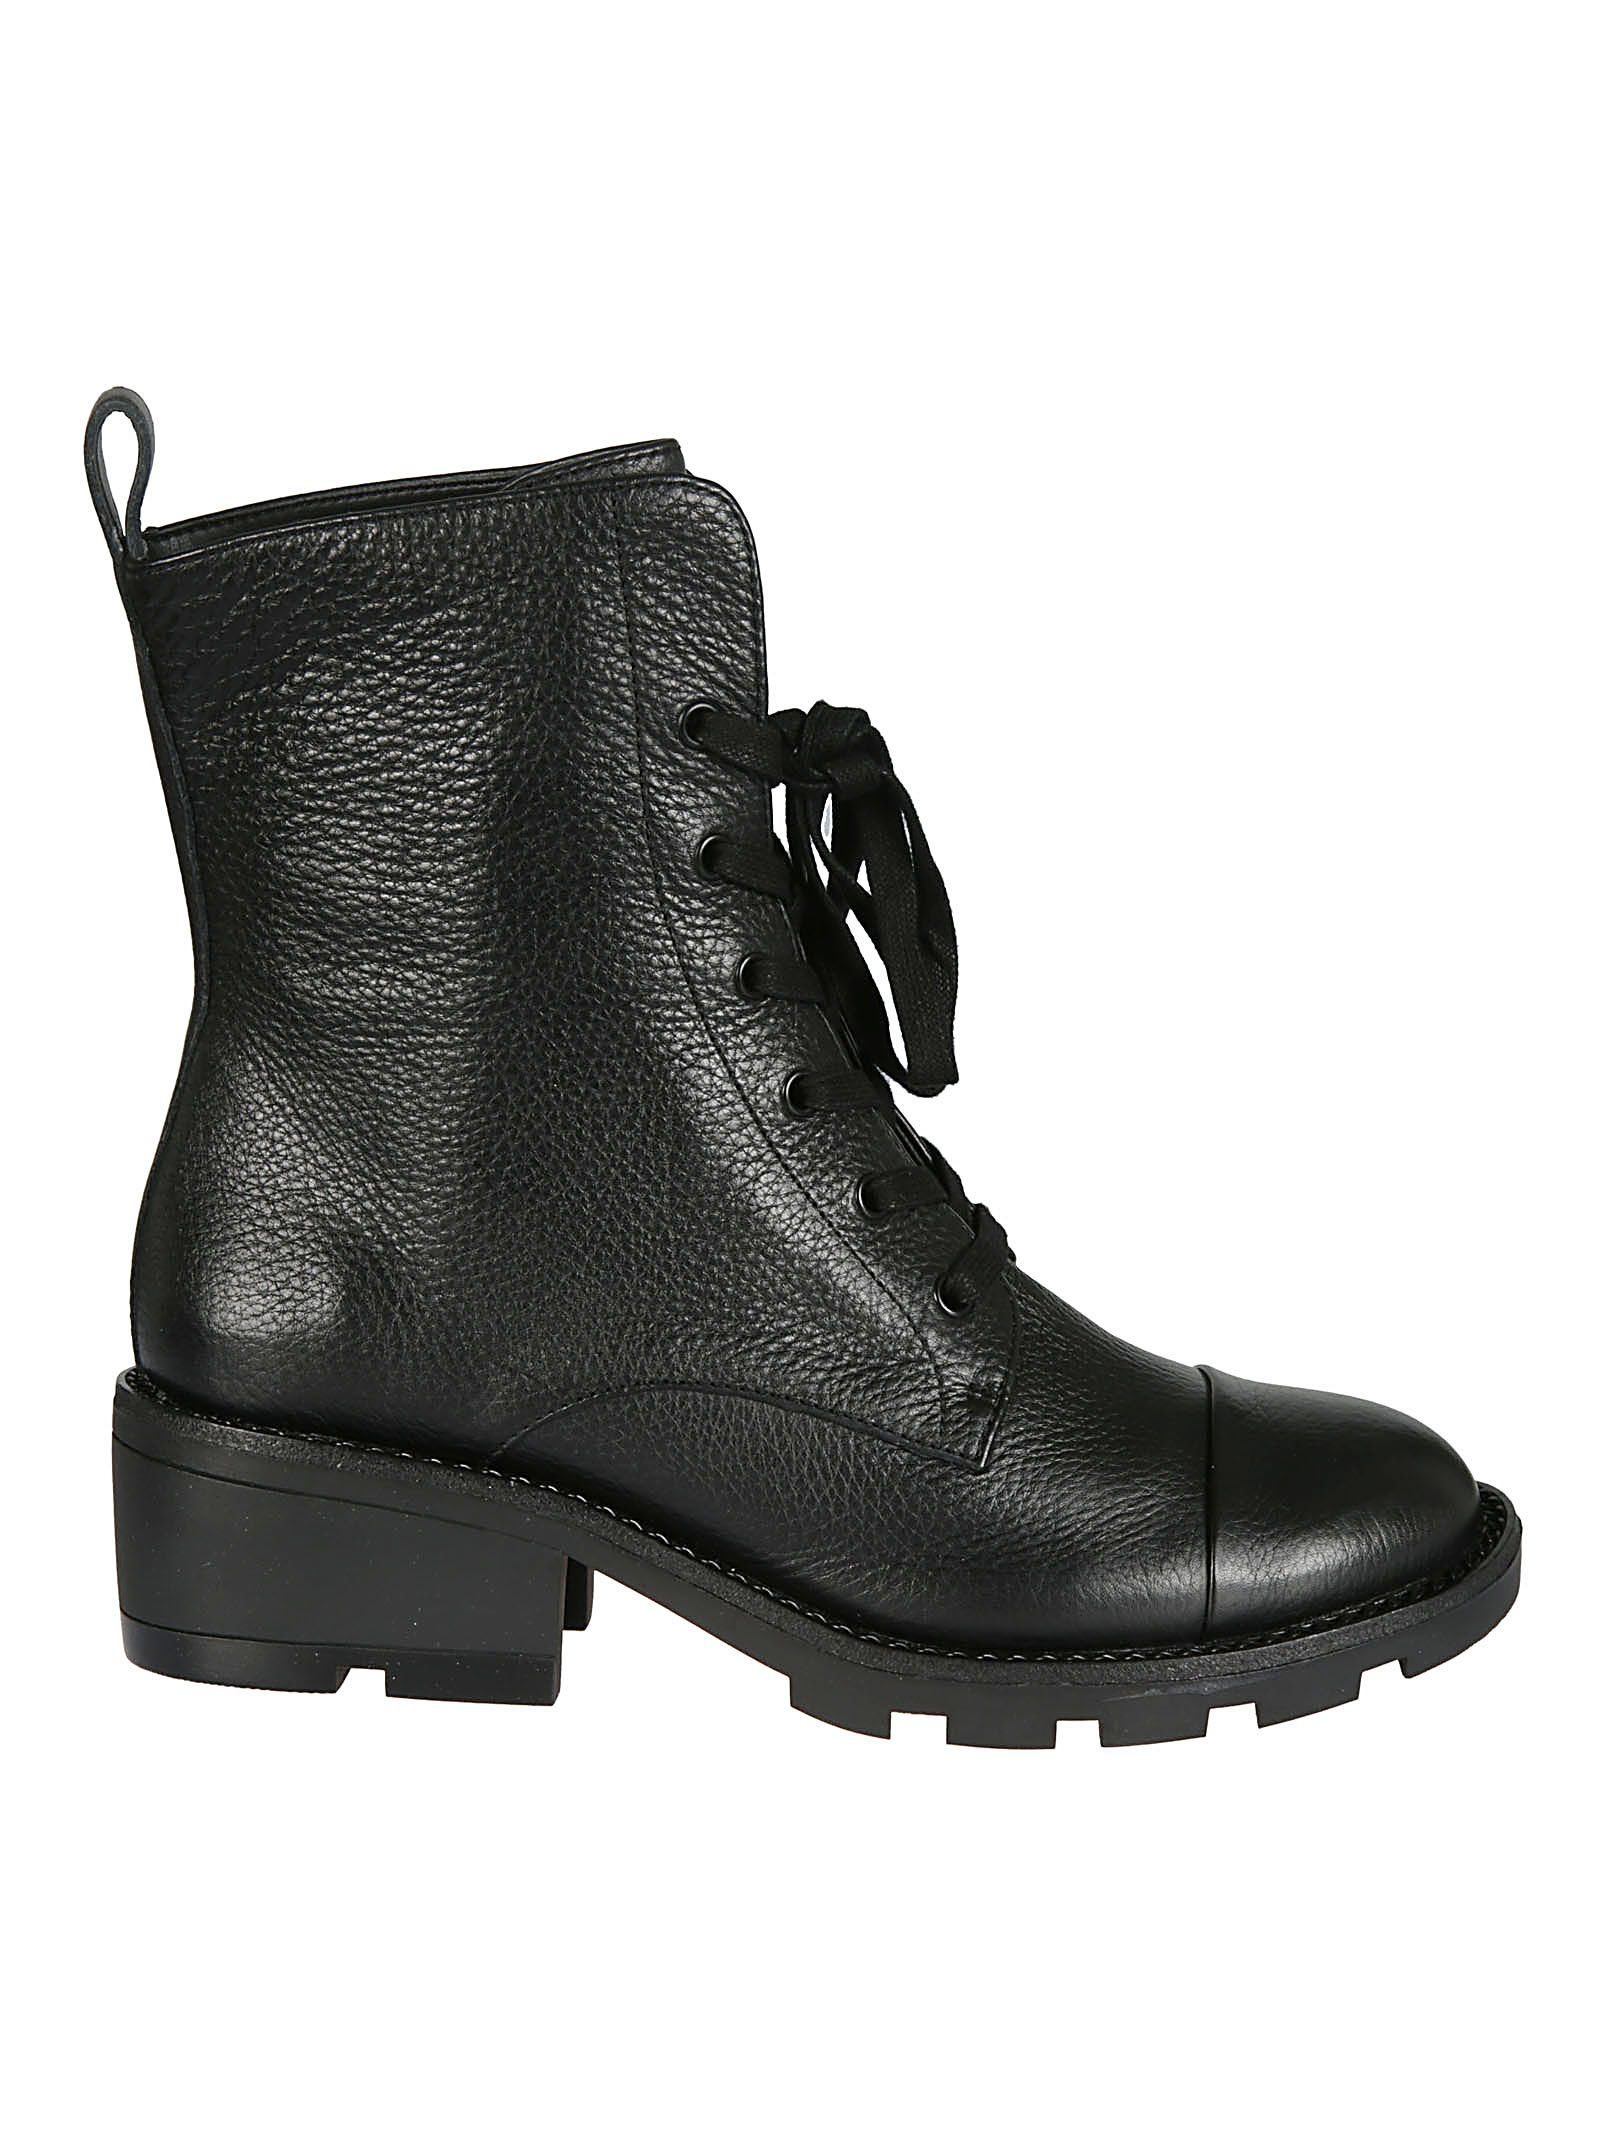 kendall + kylie -  Lace-up Ankle Boots